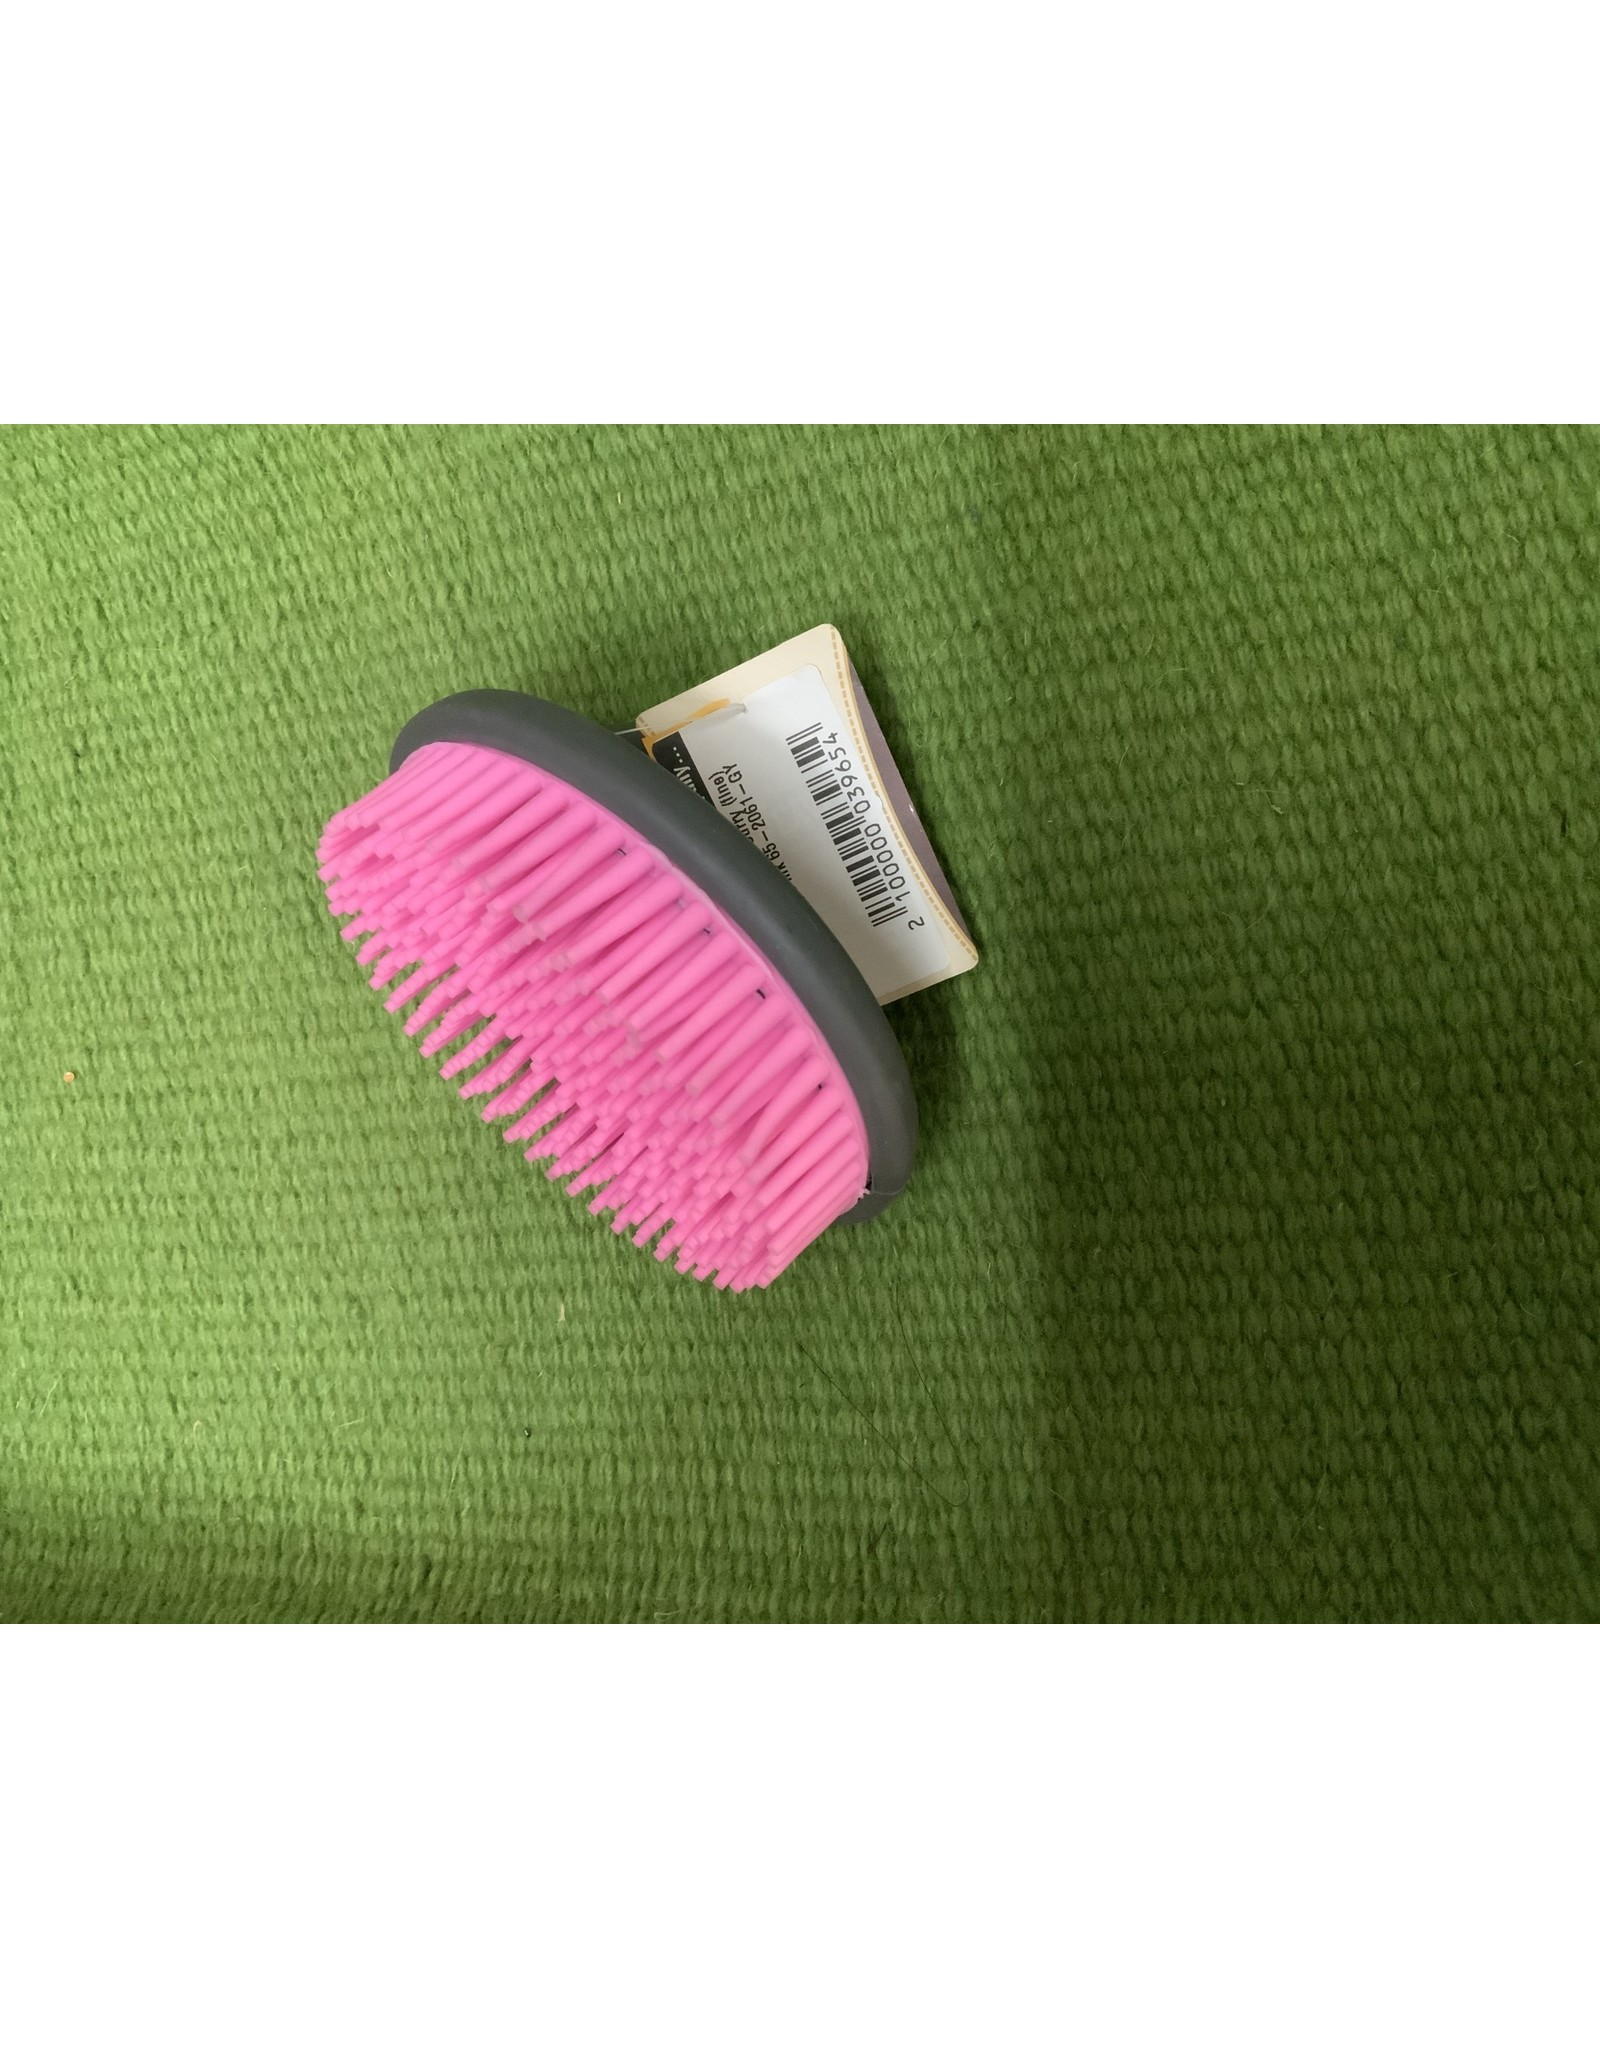 Brush* Palm Curry (fine) Gray/Pink 65-2061-GY